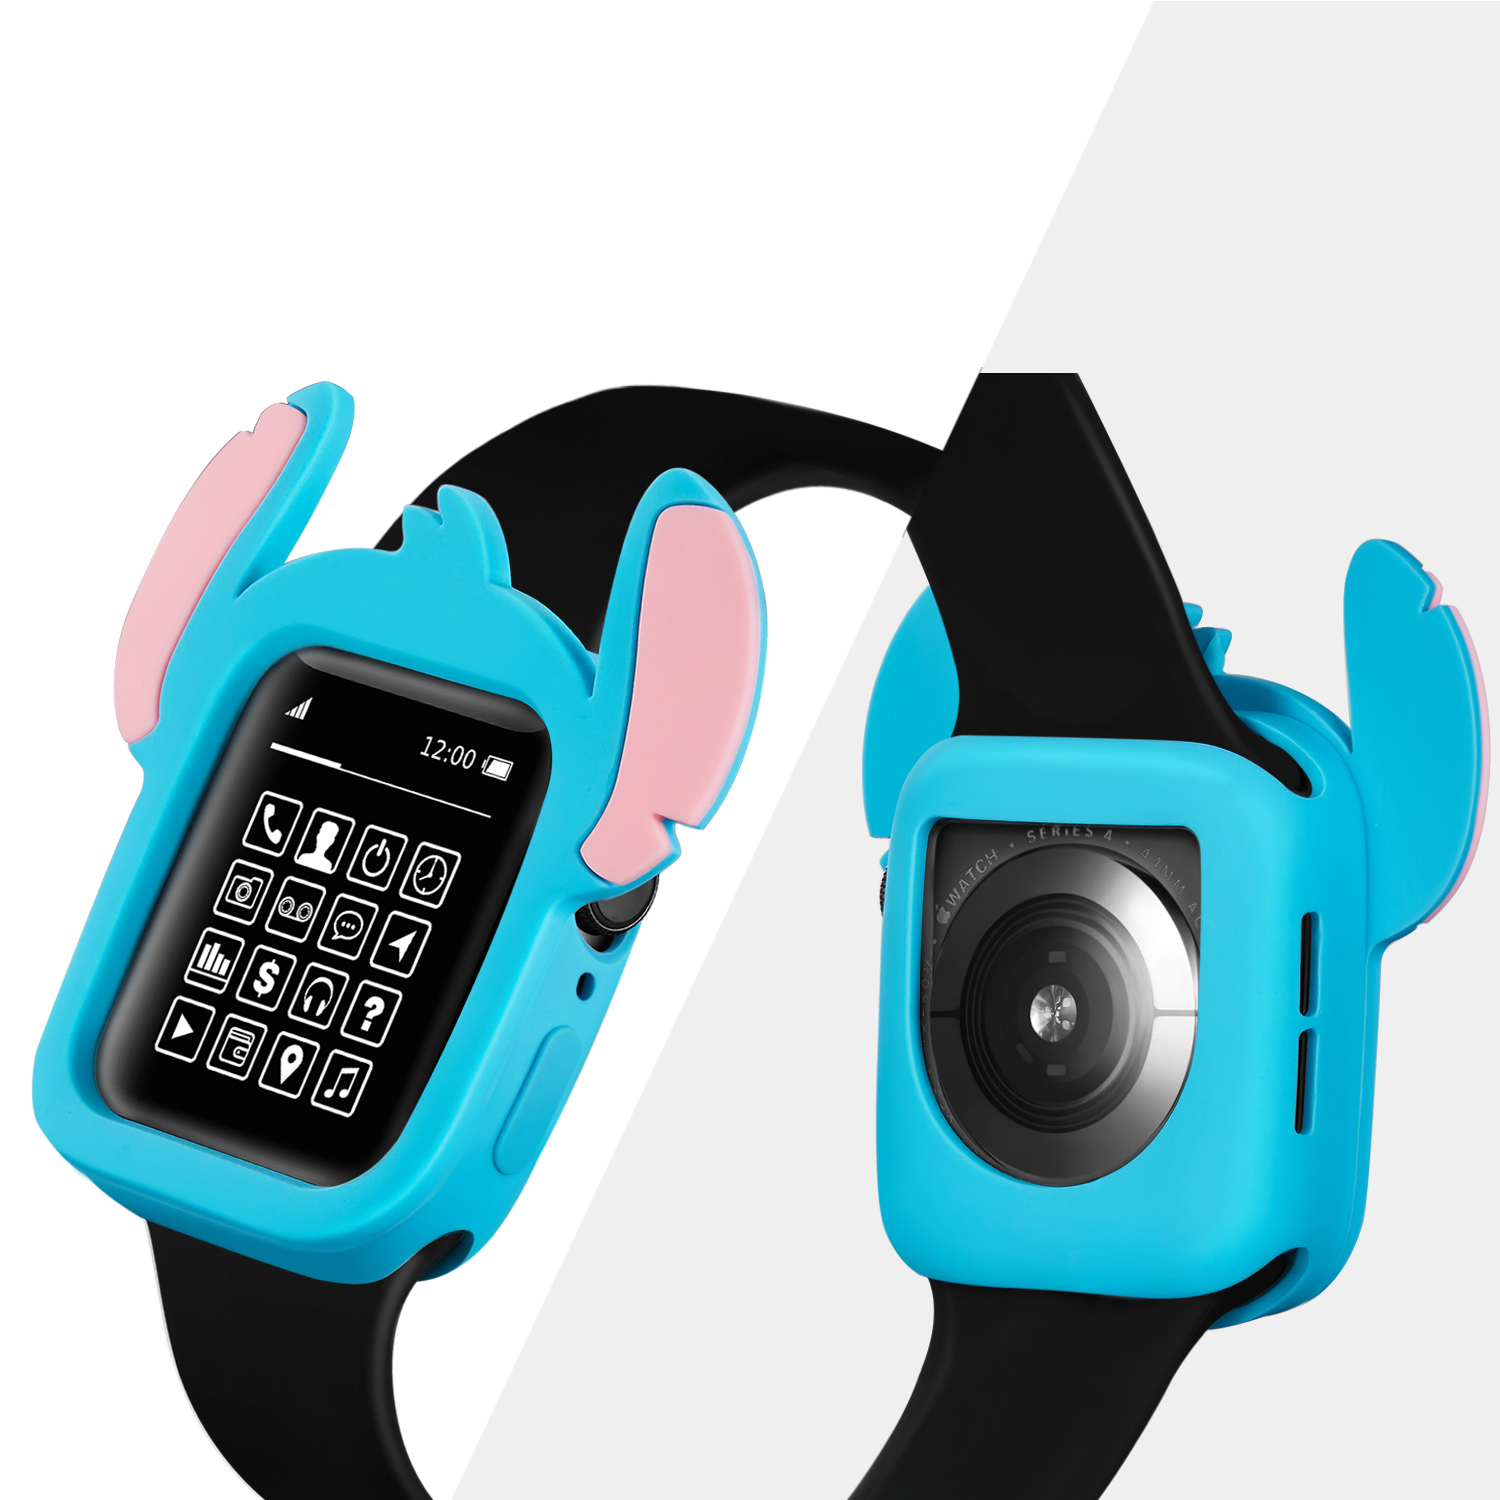 Serilabee Stitch Case for Apple Watch 20